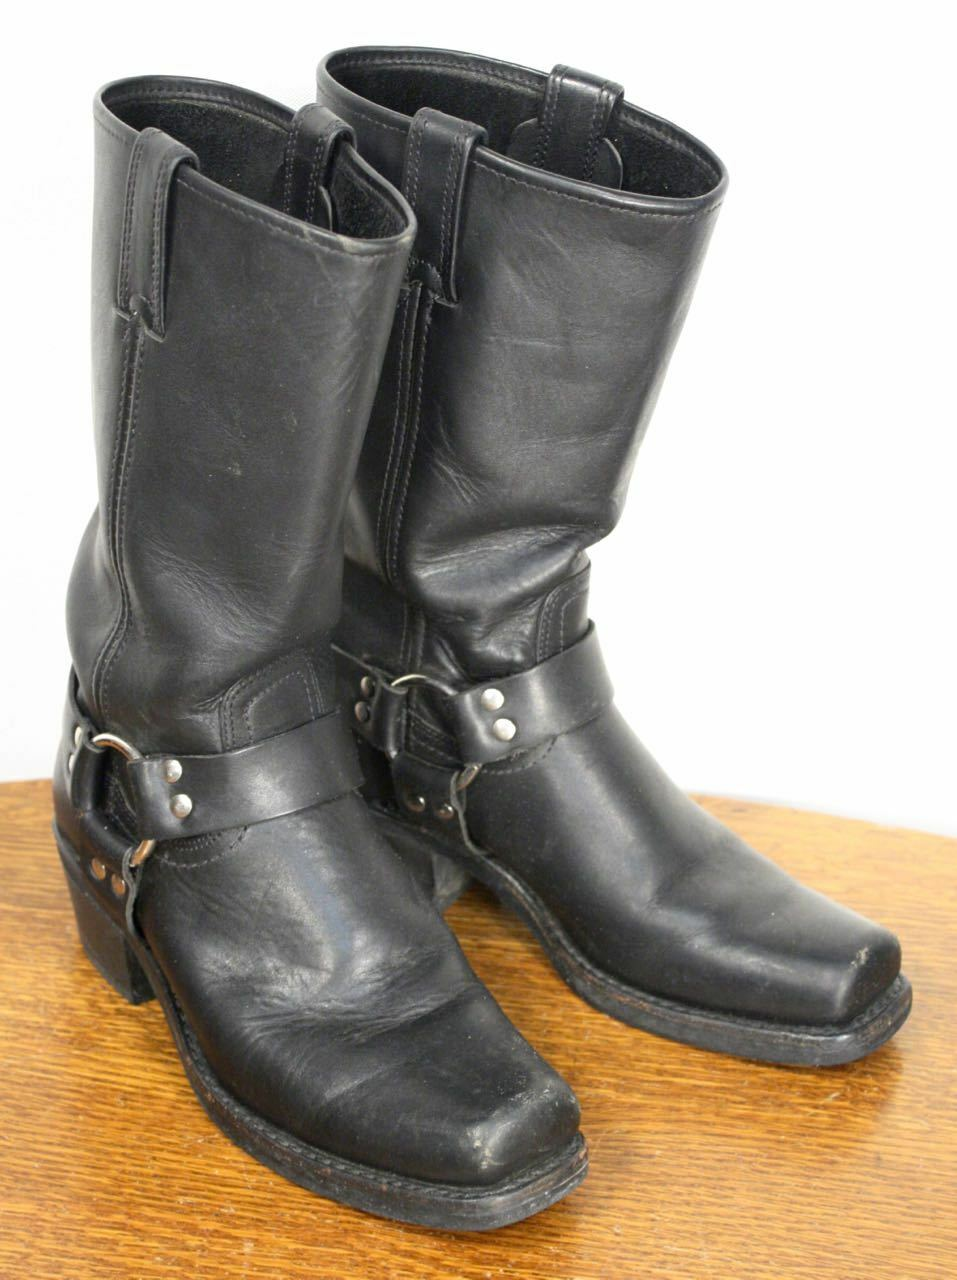 FRYE Black Leather Motorcycle Boots w Harness. Women's Size 9 Stylish